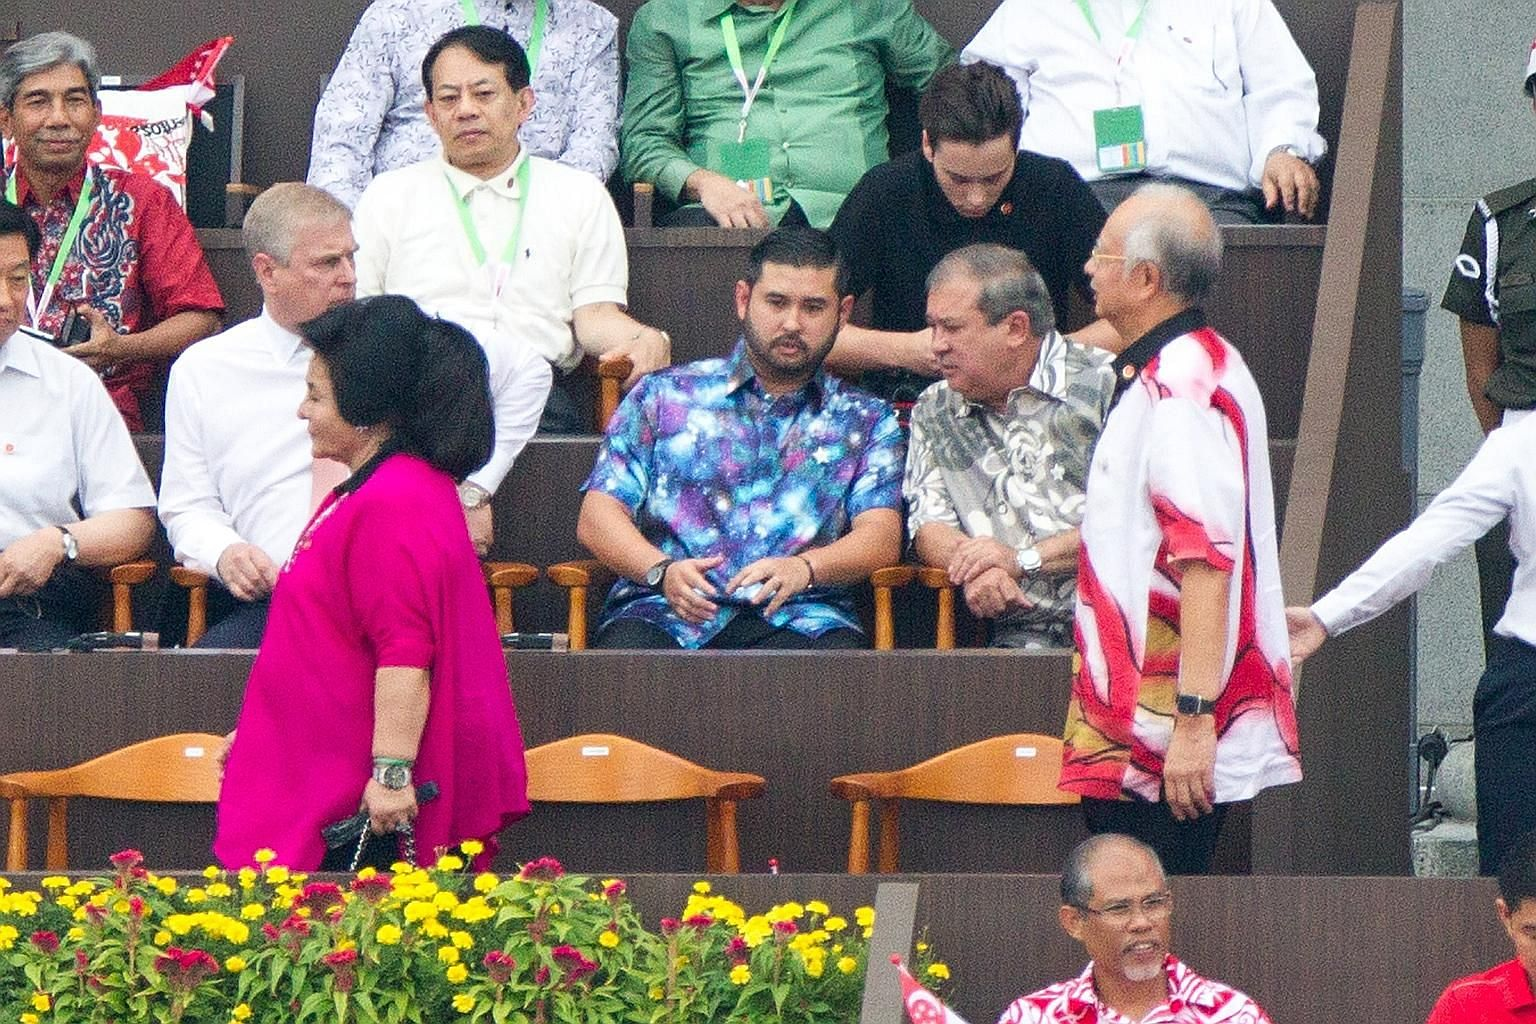 A photo showing Mr Najib (right) walking behind his wife Rosmah at Singapore's National Day celebration on Sunday. Seated on the right of the front row are Johor Sultan Ibrahim Ismail and Johor Crown Prince Tunku Ismail Sultan Ibrahim.